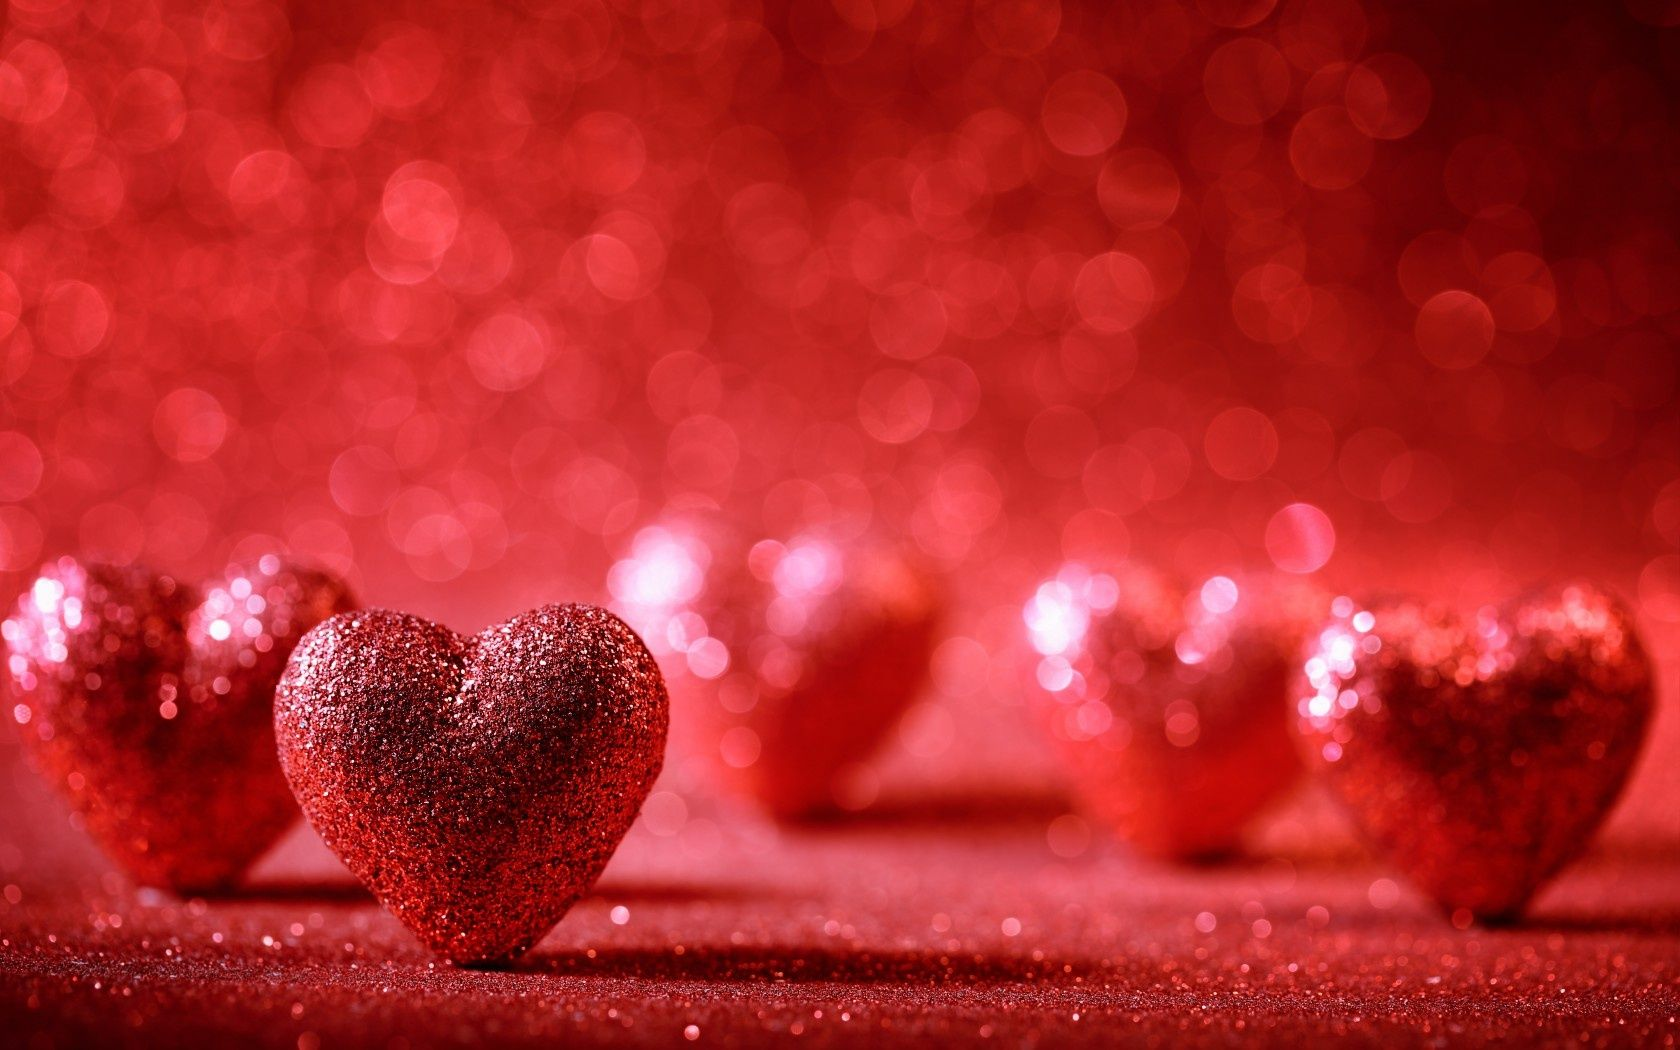 download valentines day love hearts 2015 hd widescreen wallpaper